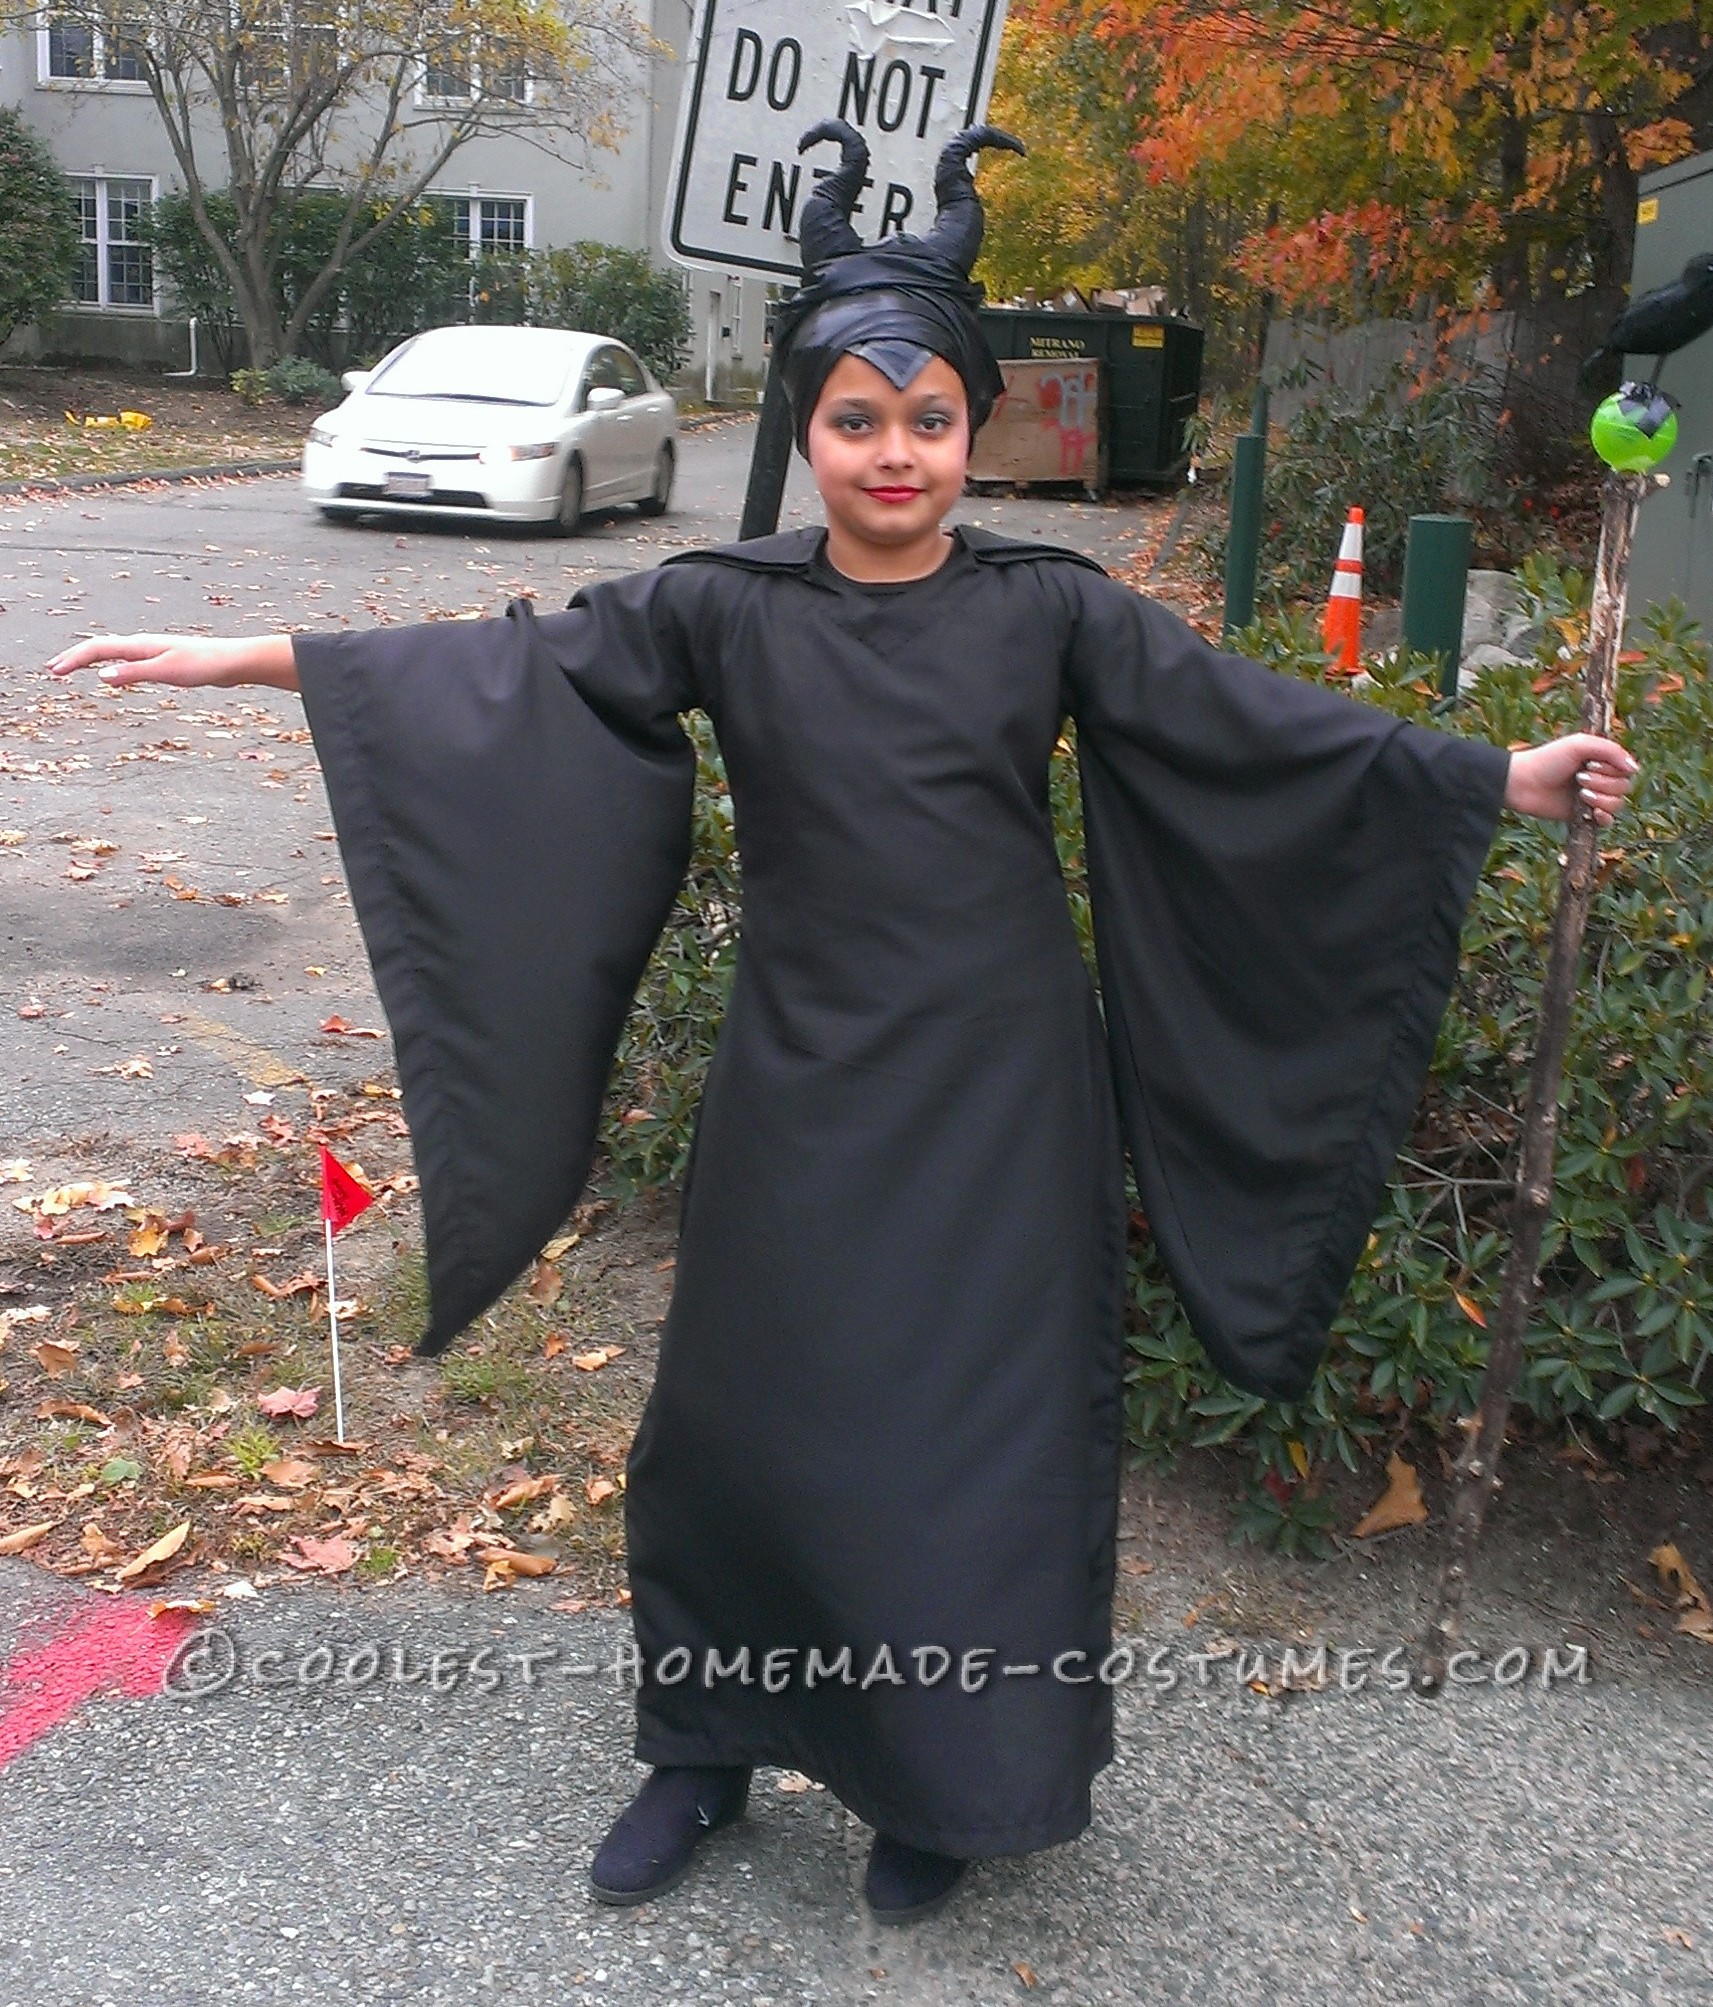 Homemade Maleficent Costume for a Child